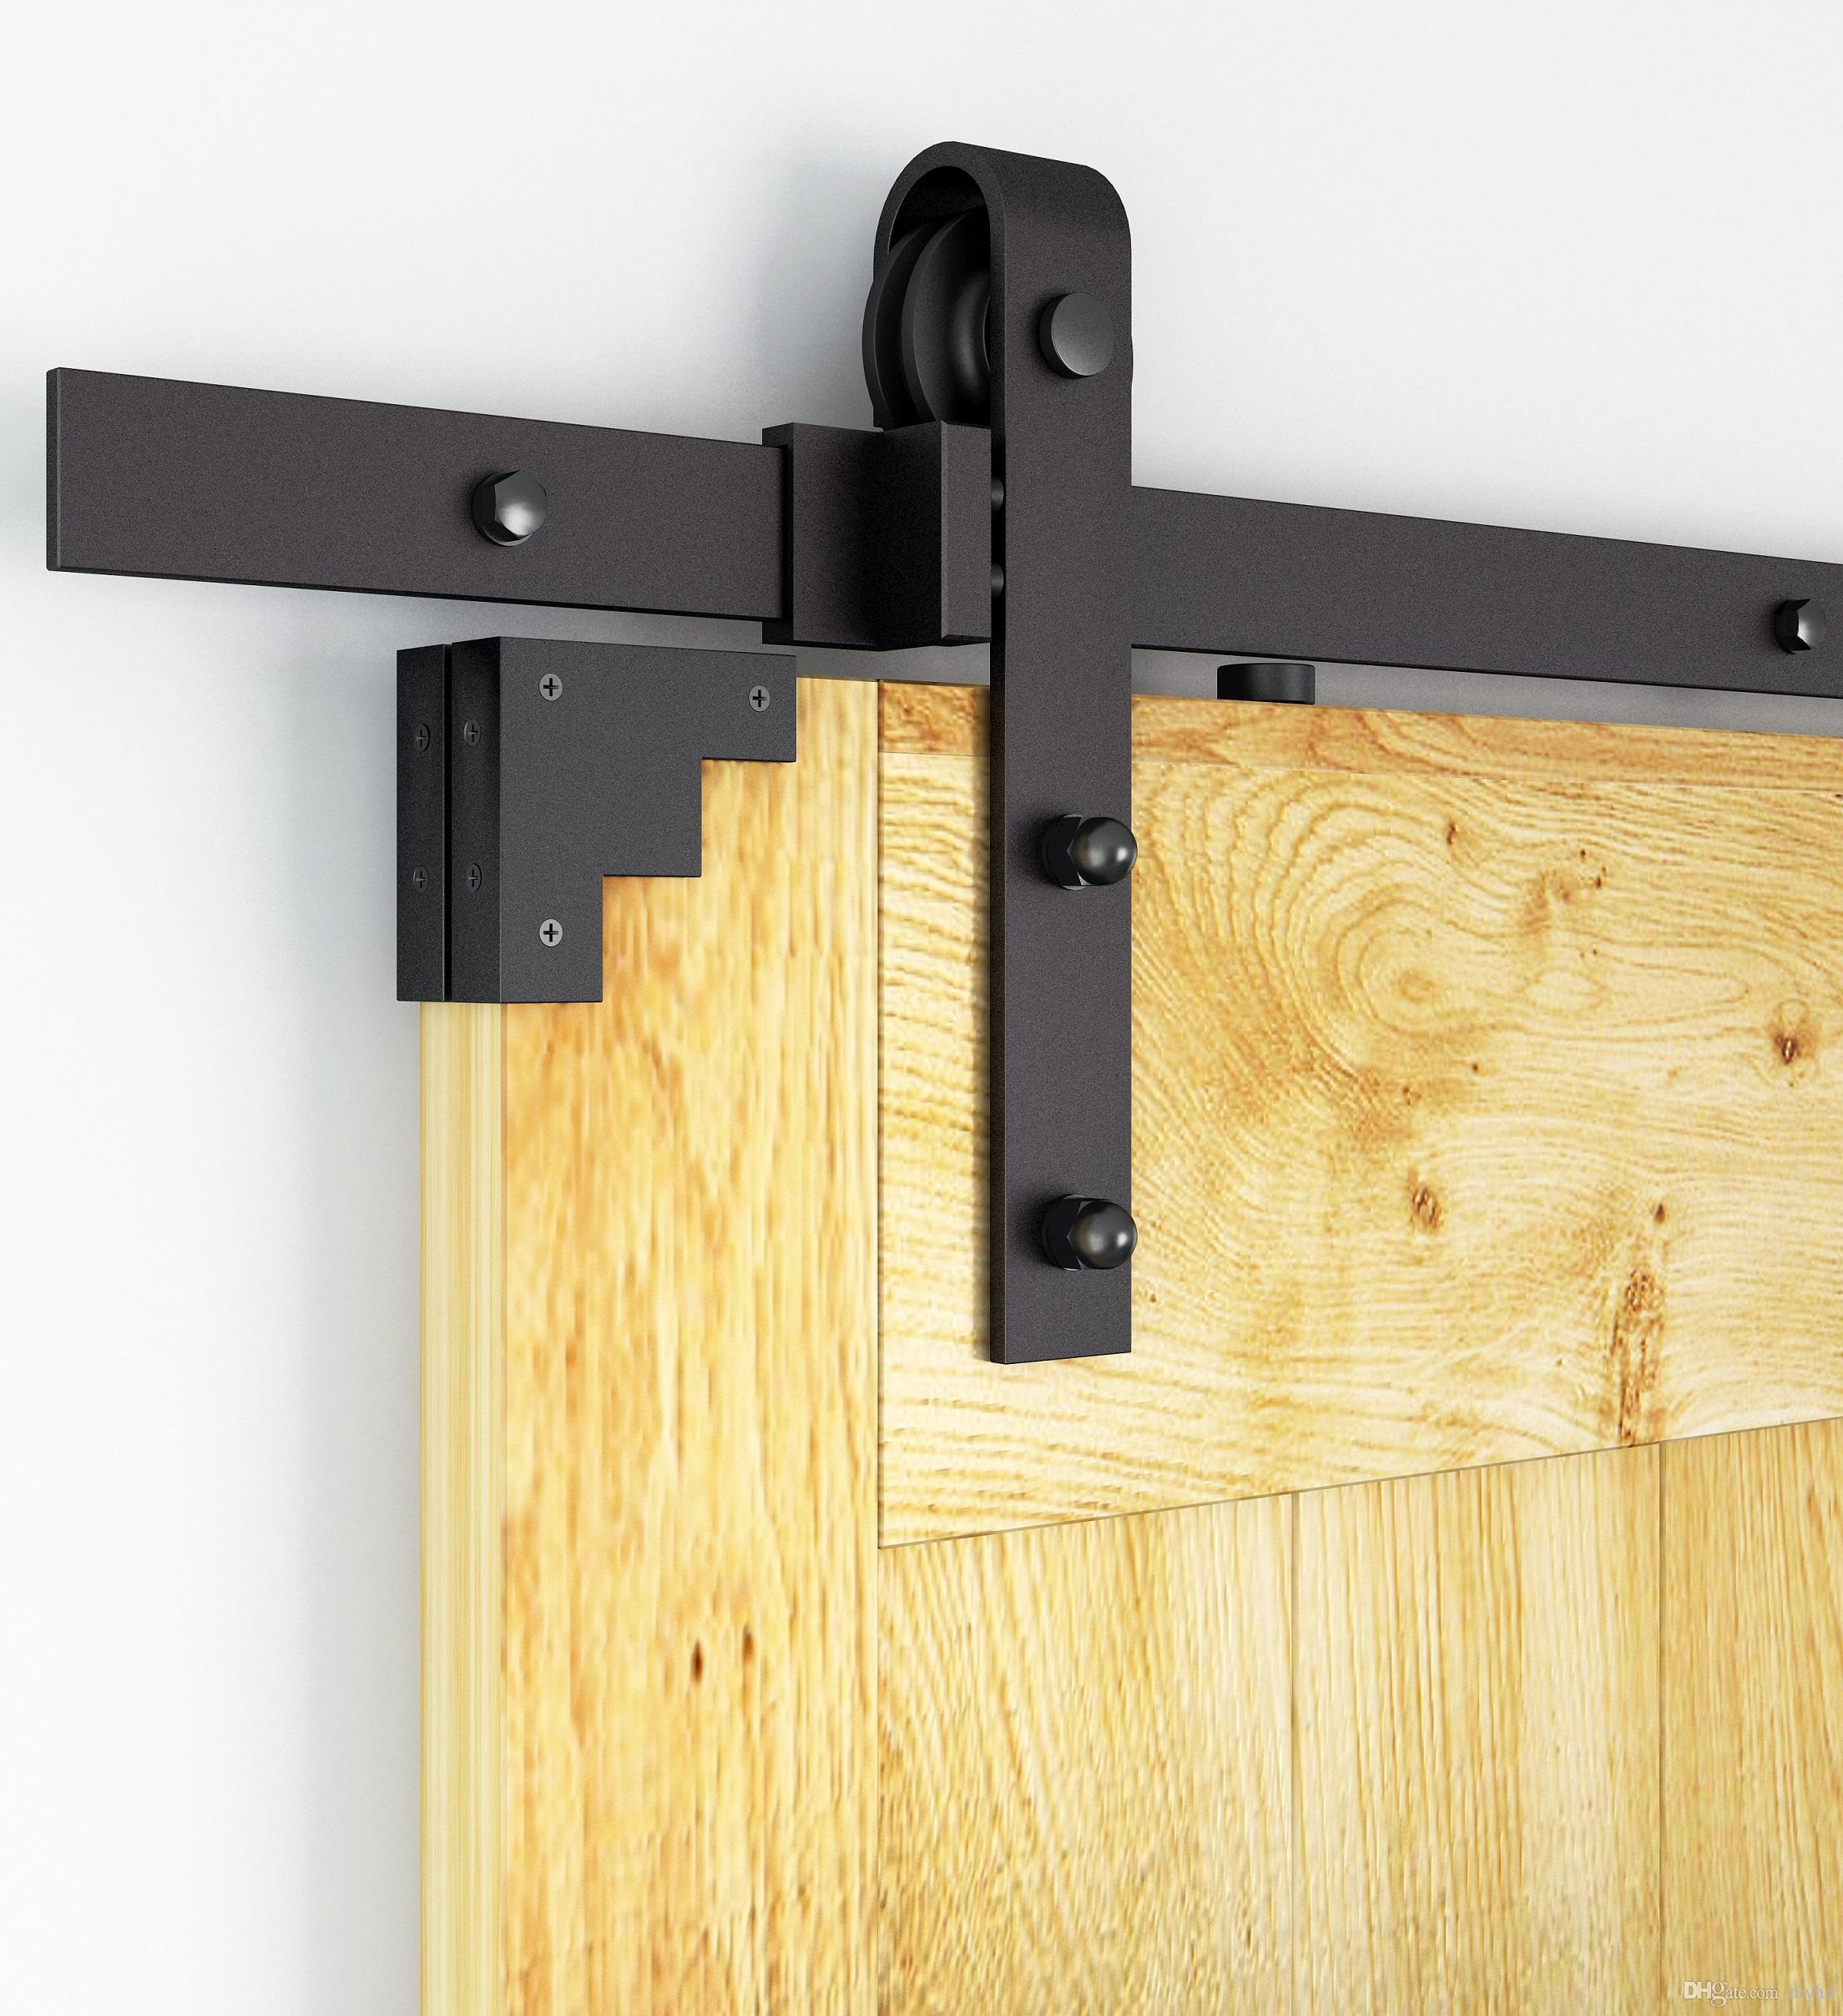 2017 6ft/8ft/10ft Rustic Black Sliding Barn Door Hardware Modern Double  Barn Wood Door Hanging Track Kit From Diyhd, $70.36 | Dhgate.Com